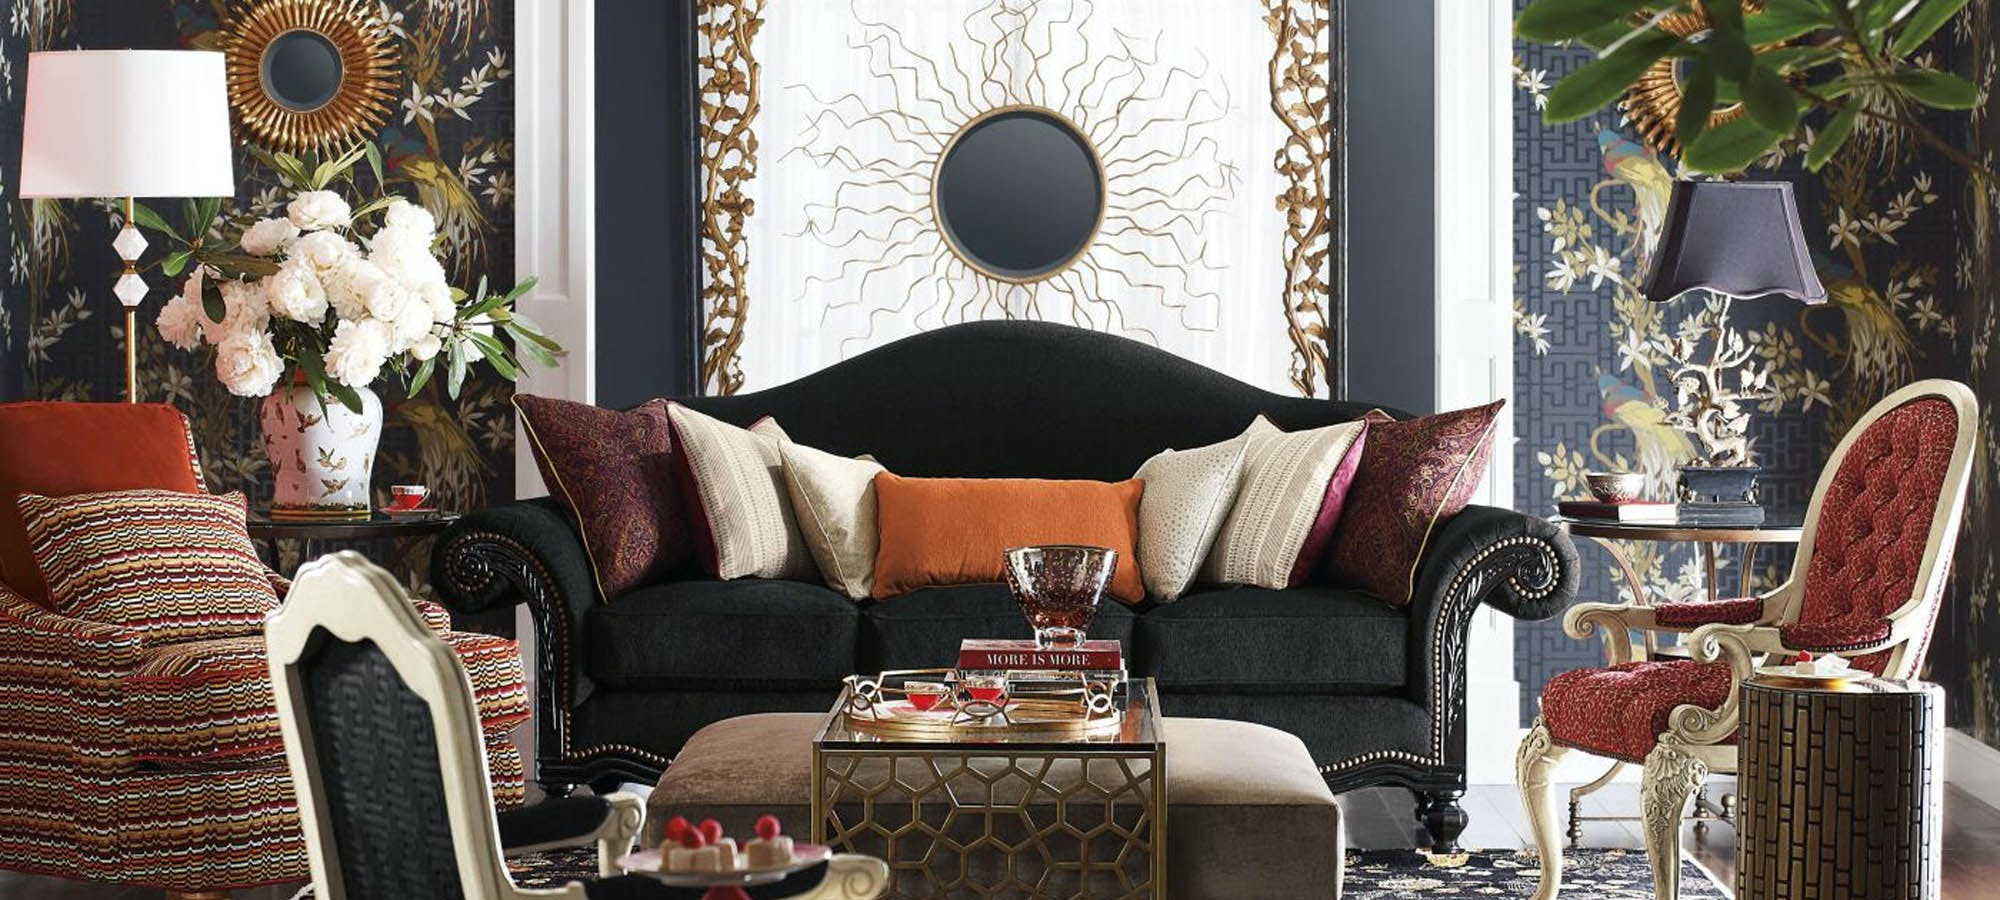 Shop For Home Accents Furniture In Cincinnati And Dayton OH Part 32